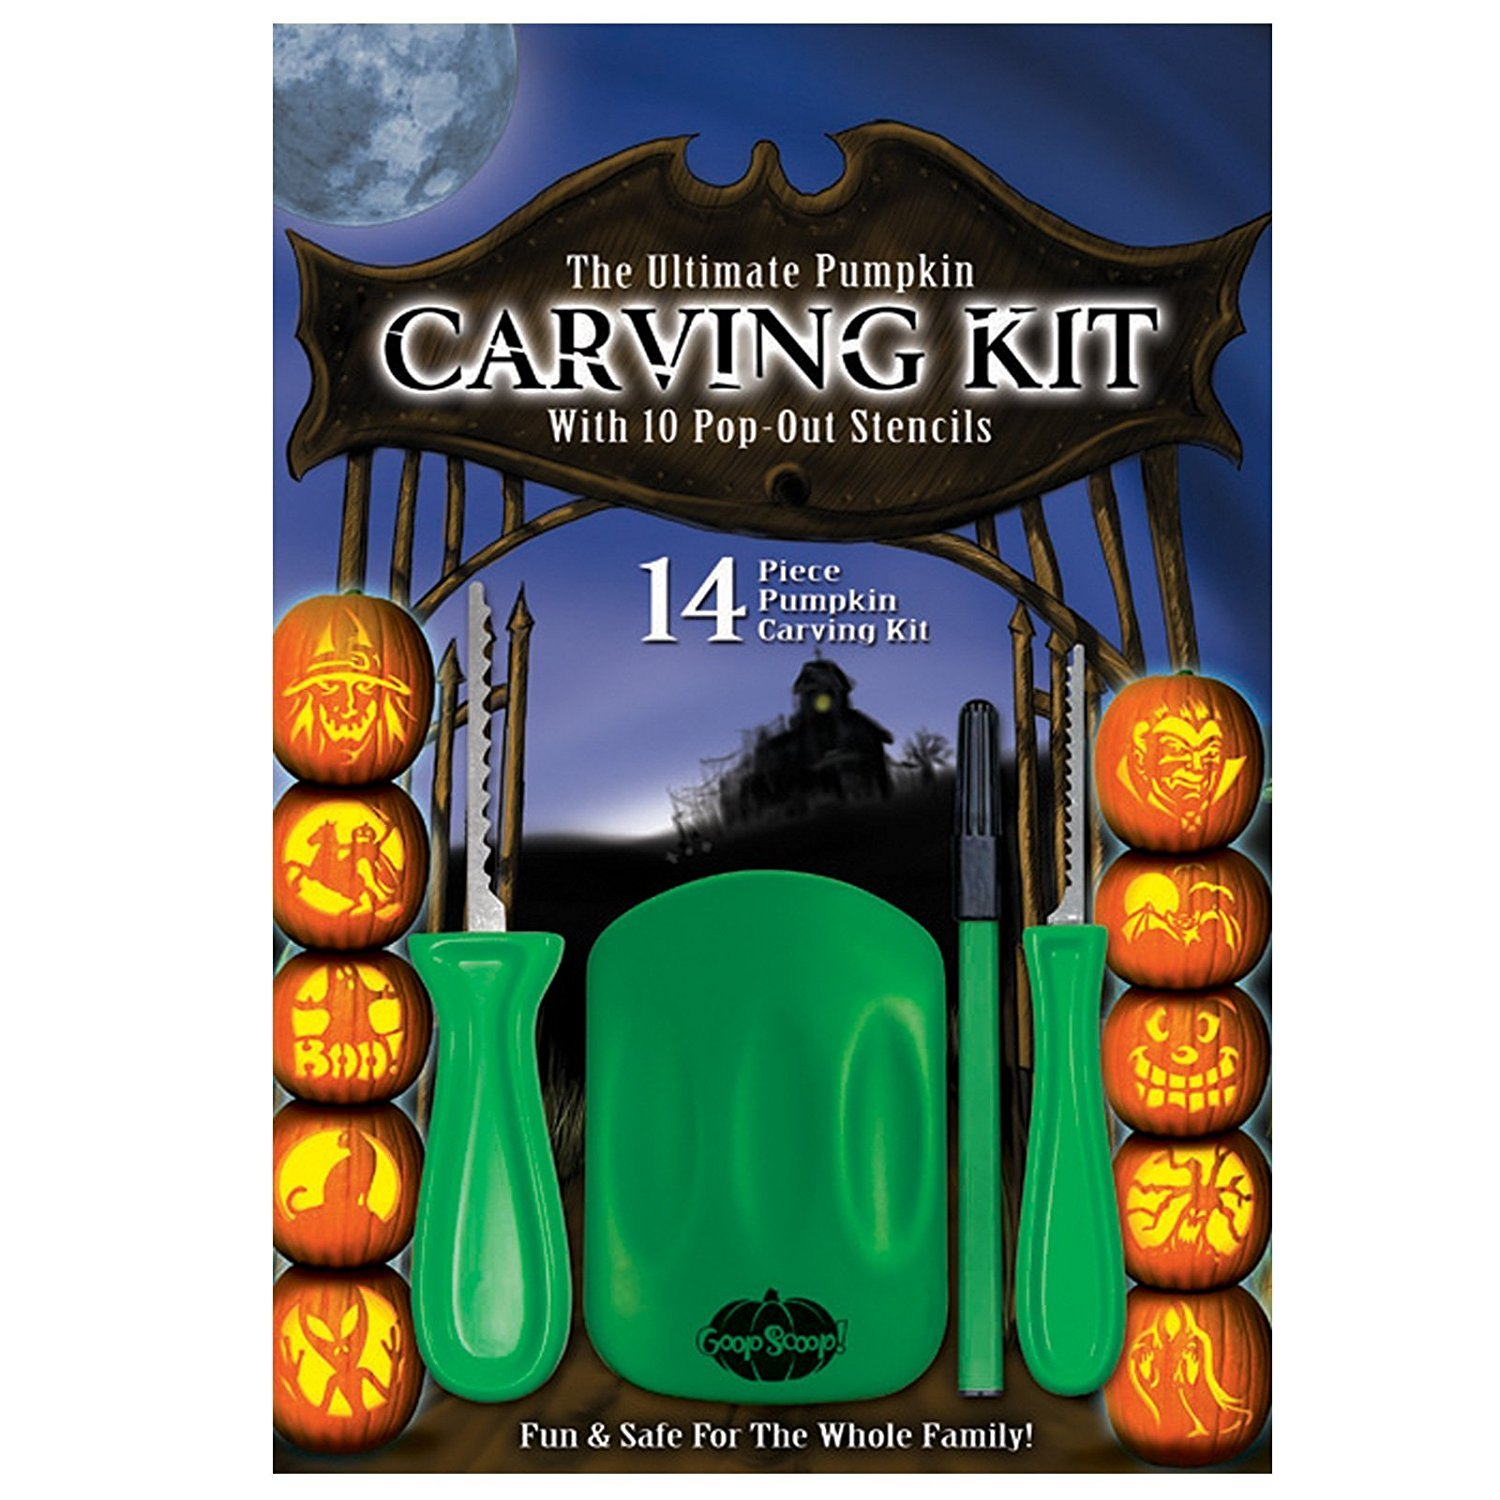 The Ultimate Pumpkin Carving Kit with 10 Pop-Out Stencils 3 Pack